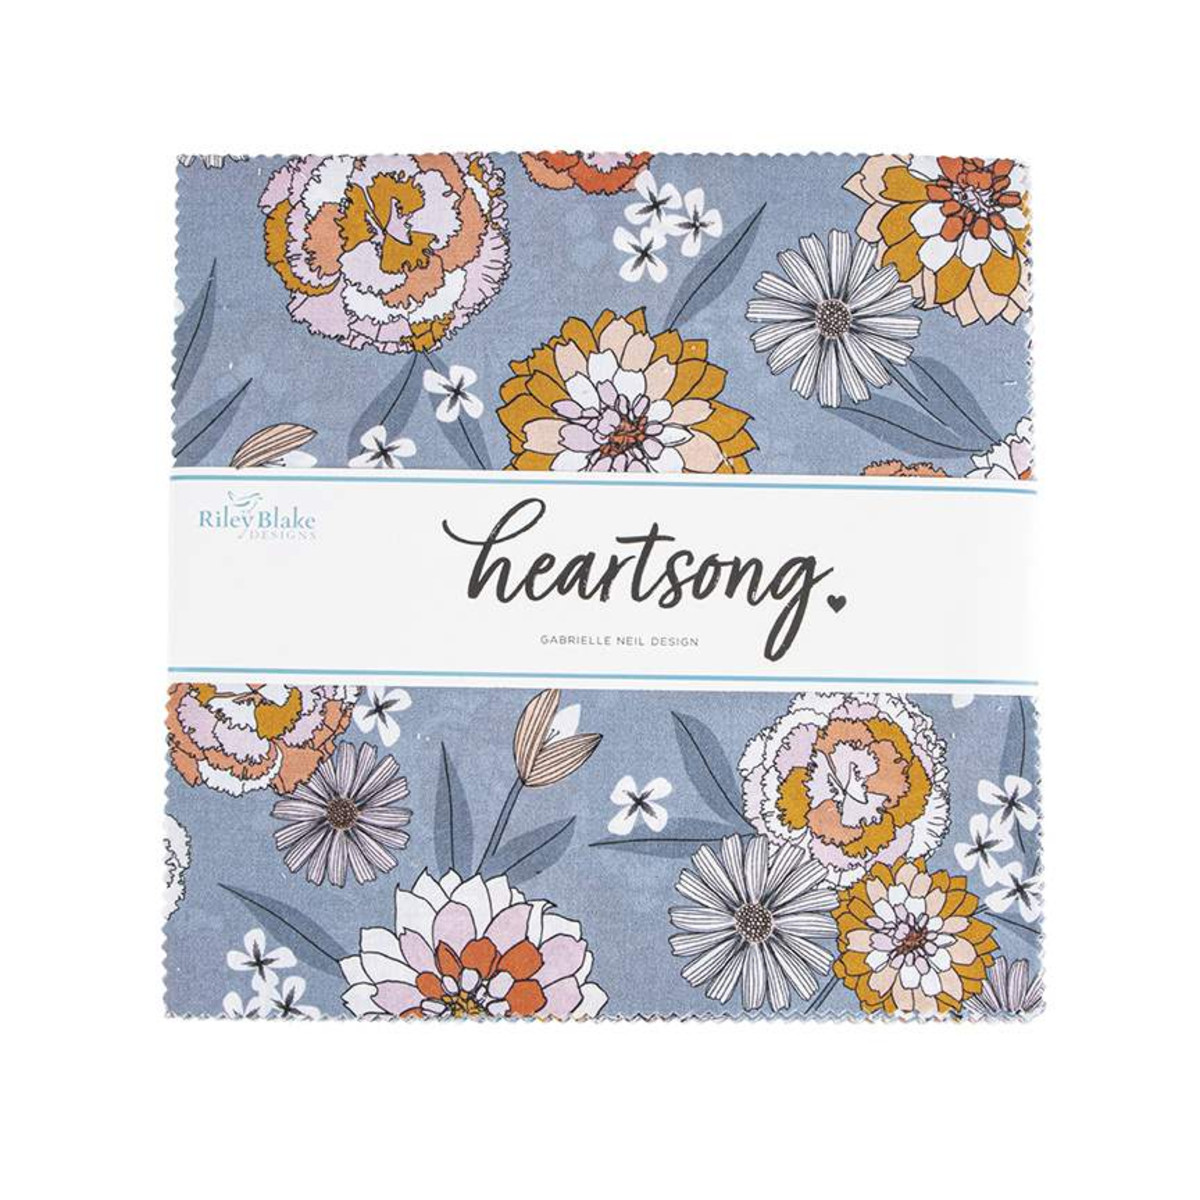 Riley Blake Layer Cake - Heartsong by Gabrielle Neil Design